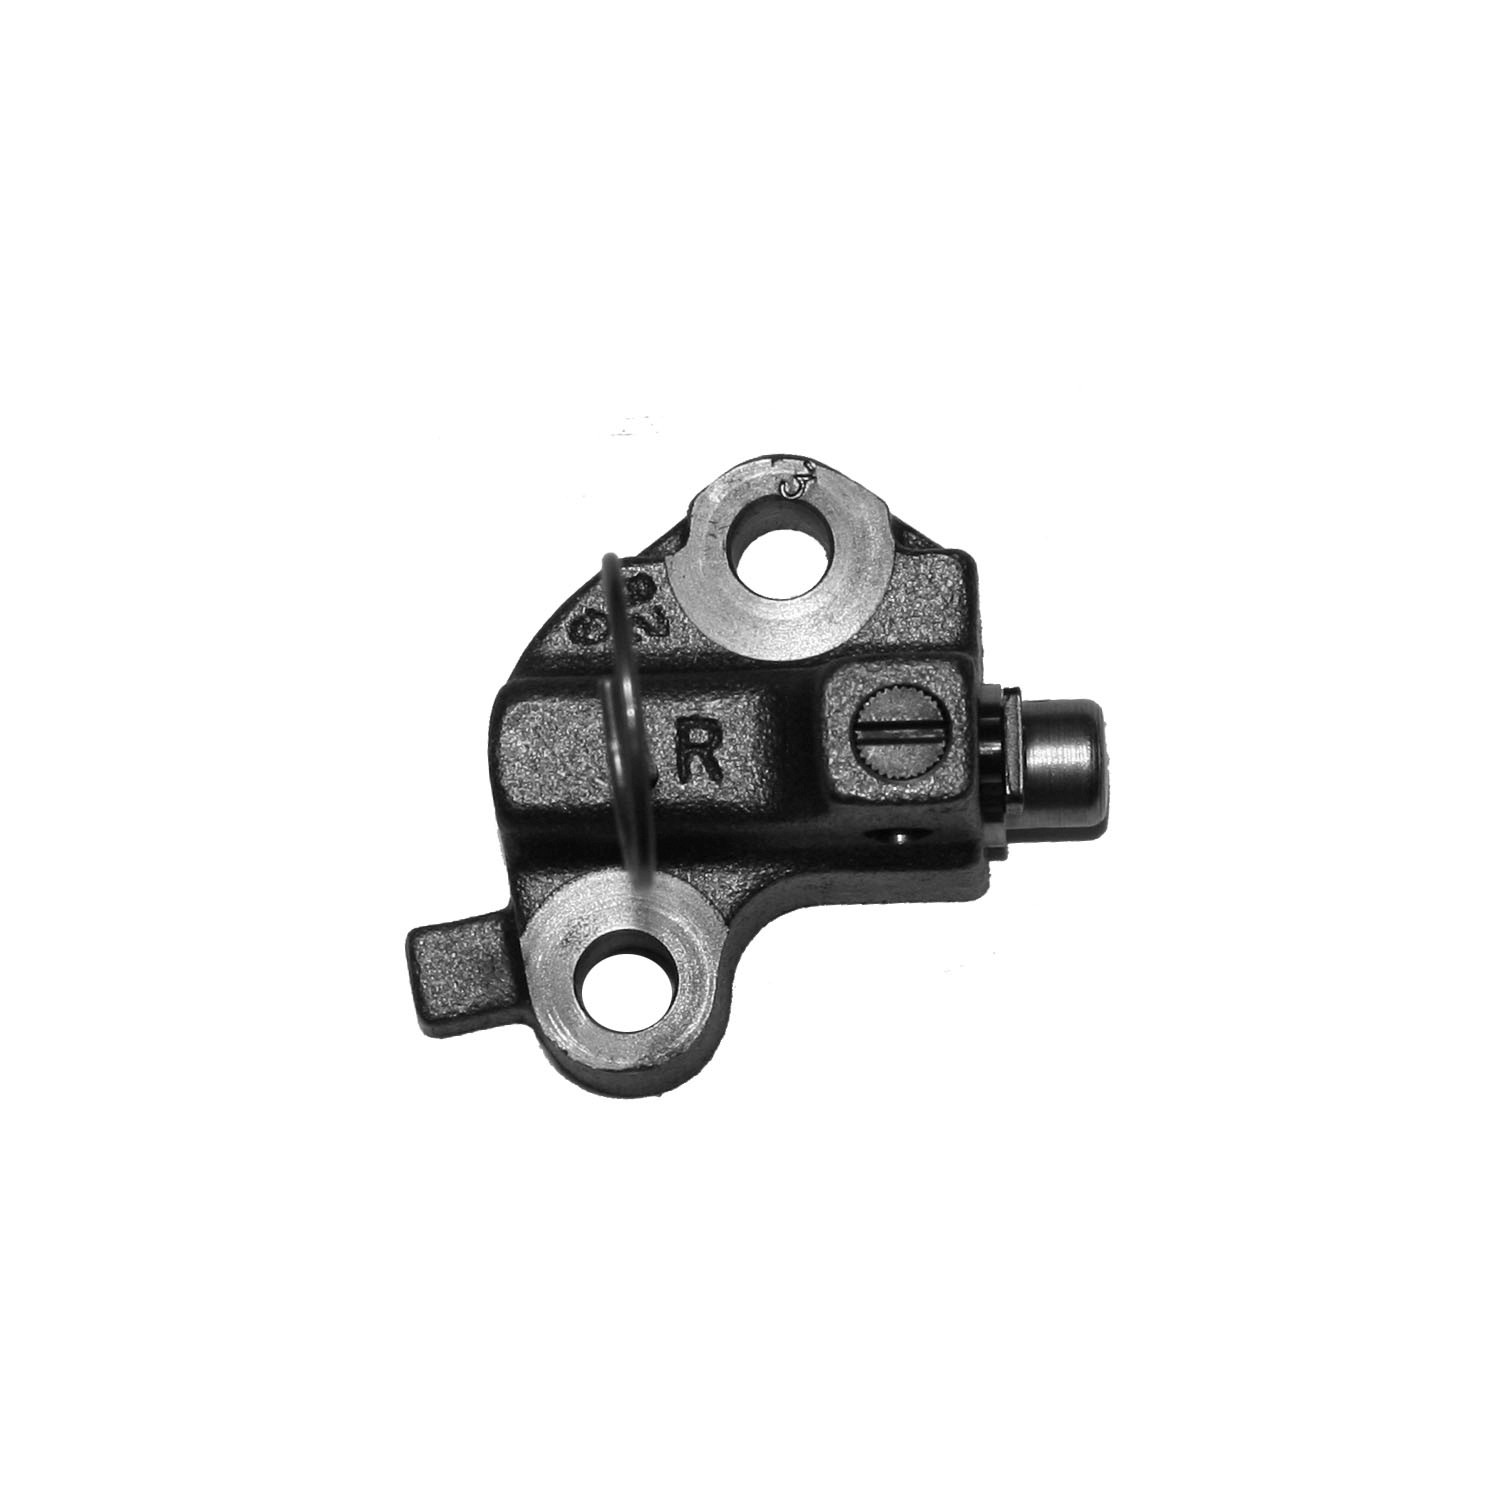 SA GEAR - Engine Timing Chain Tensioner - Z3O 9431